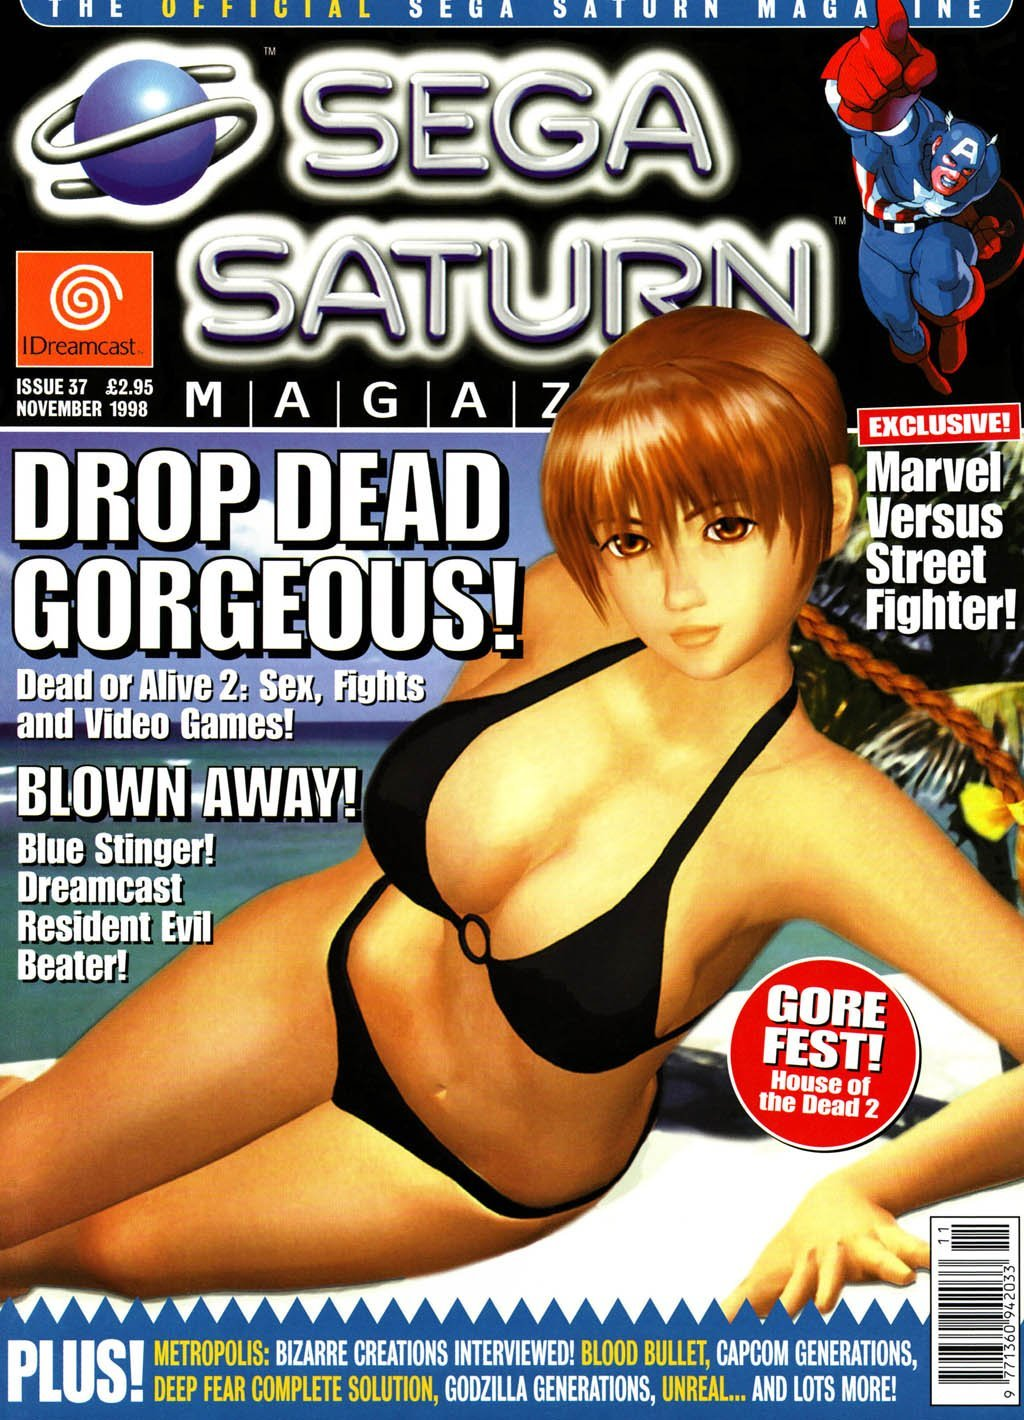 Official Sega Saturn Magazine 37 (November 1998)